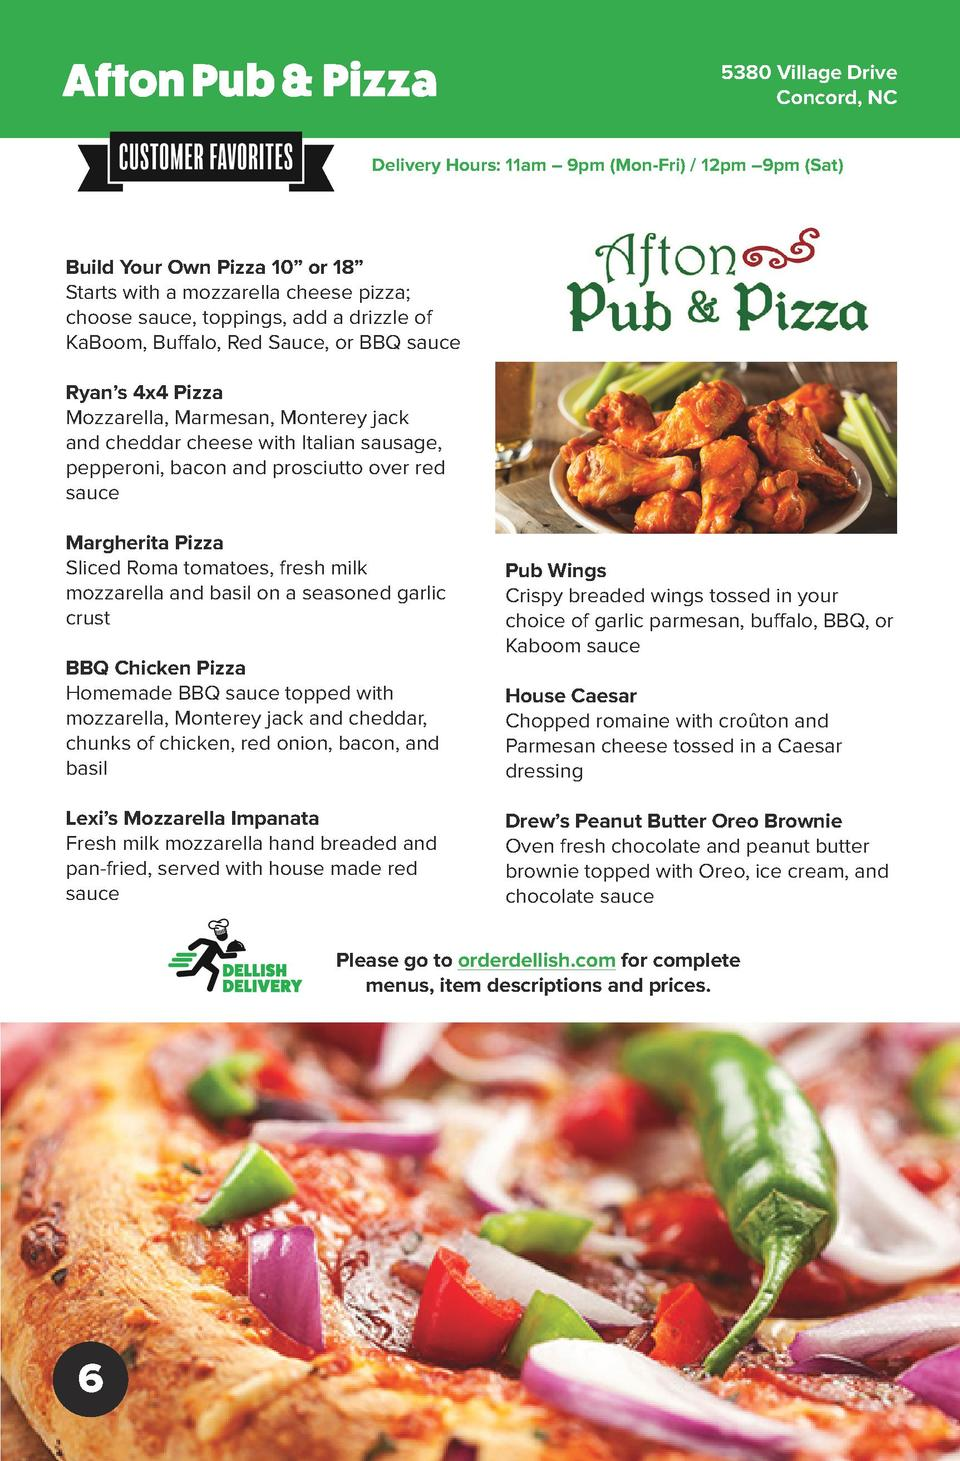 Afton Pub   Pizza  5380 Village Drive Concord, NC  Delivery Hours  11am     9pm  Mon-Fri    12pm    9pm  Sat   Build Your ...